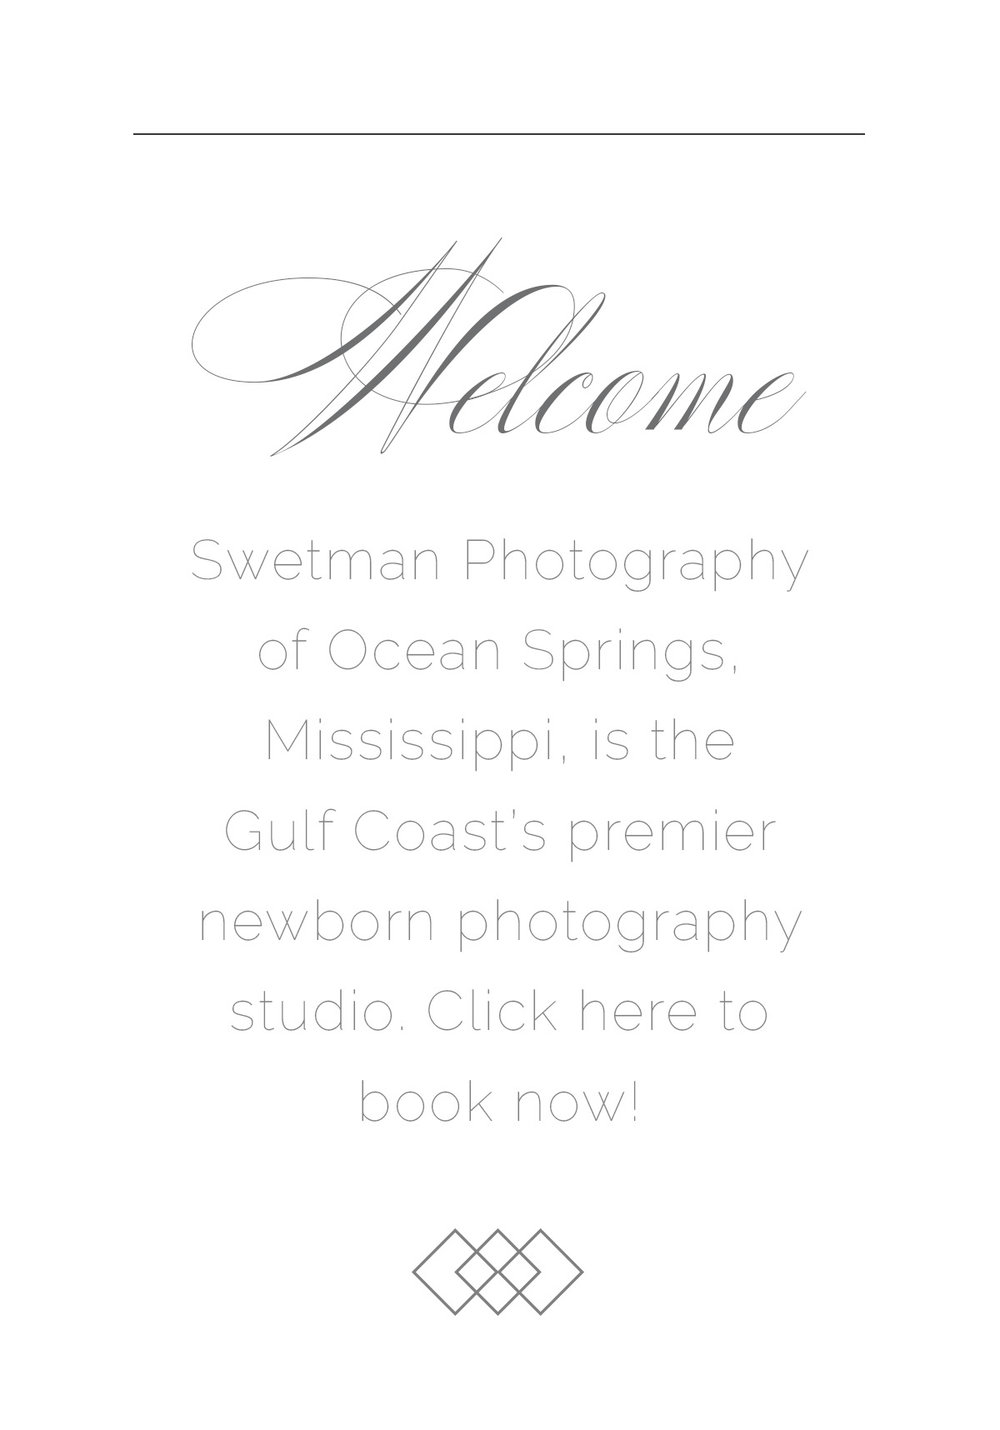 swetman-photography-ocean-springs-newborn-photographer-mississippi.jpg